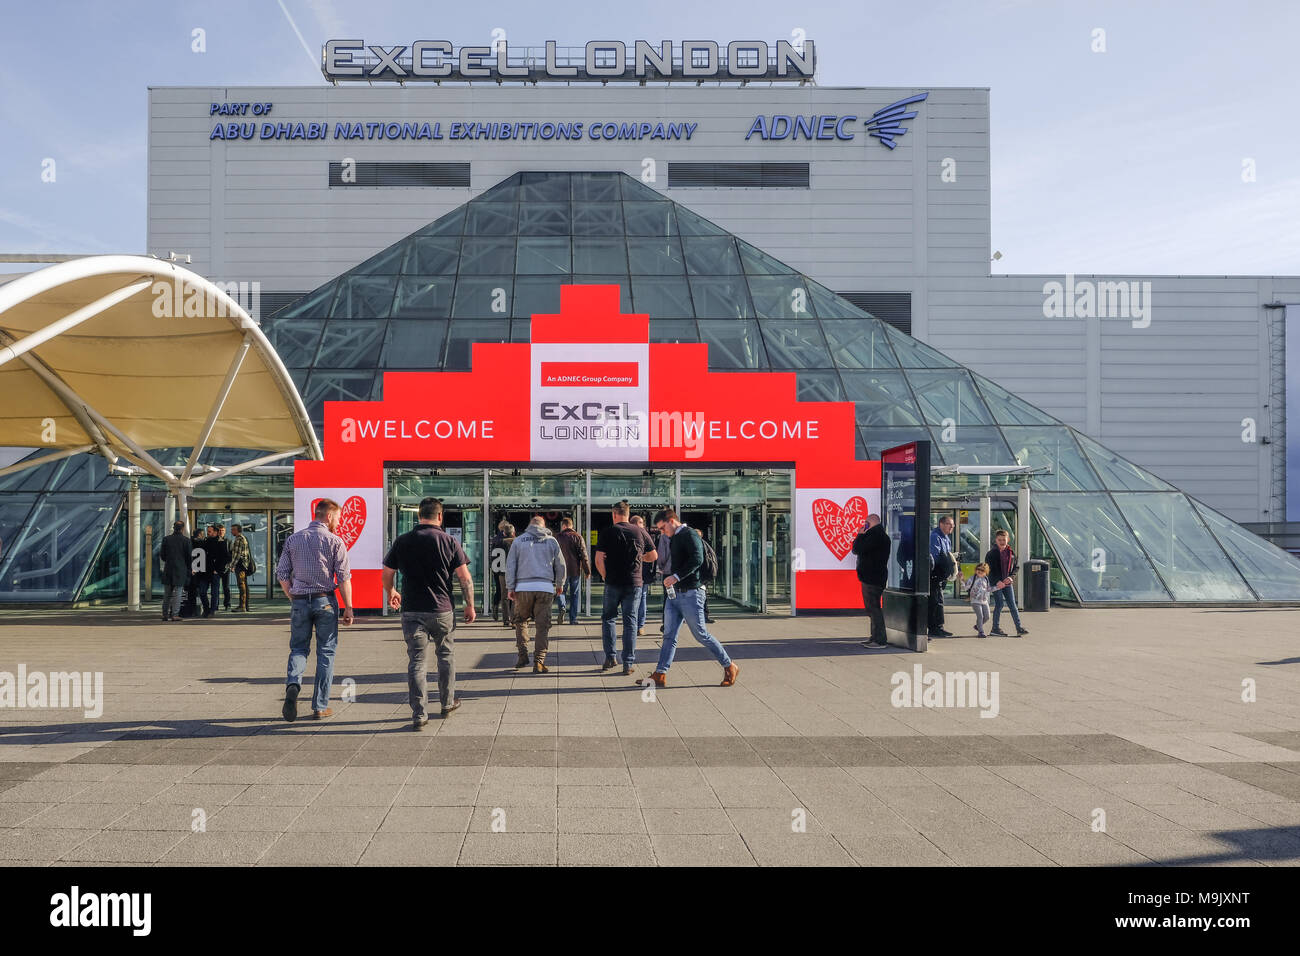 London, UK - February 16, 2018:  towards the entrance of Excel Exhibition Centre at Royal Docks, London, with people walking towards the doors. - Stock Image